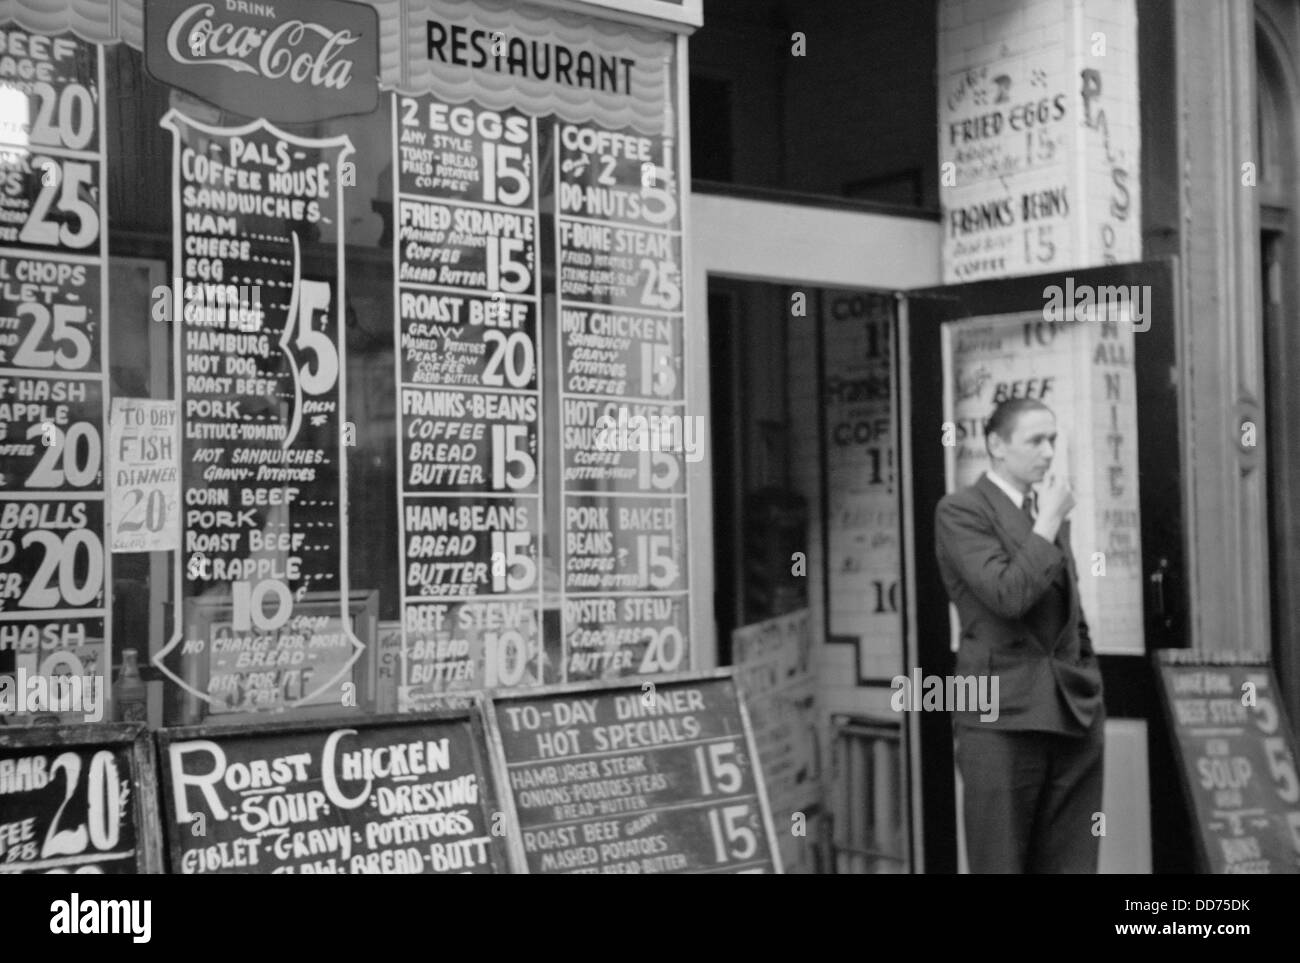 Depression era city restaurant with posted menu and prices